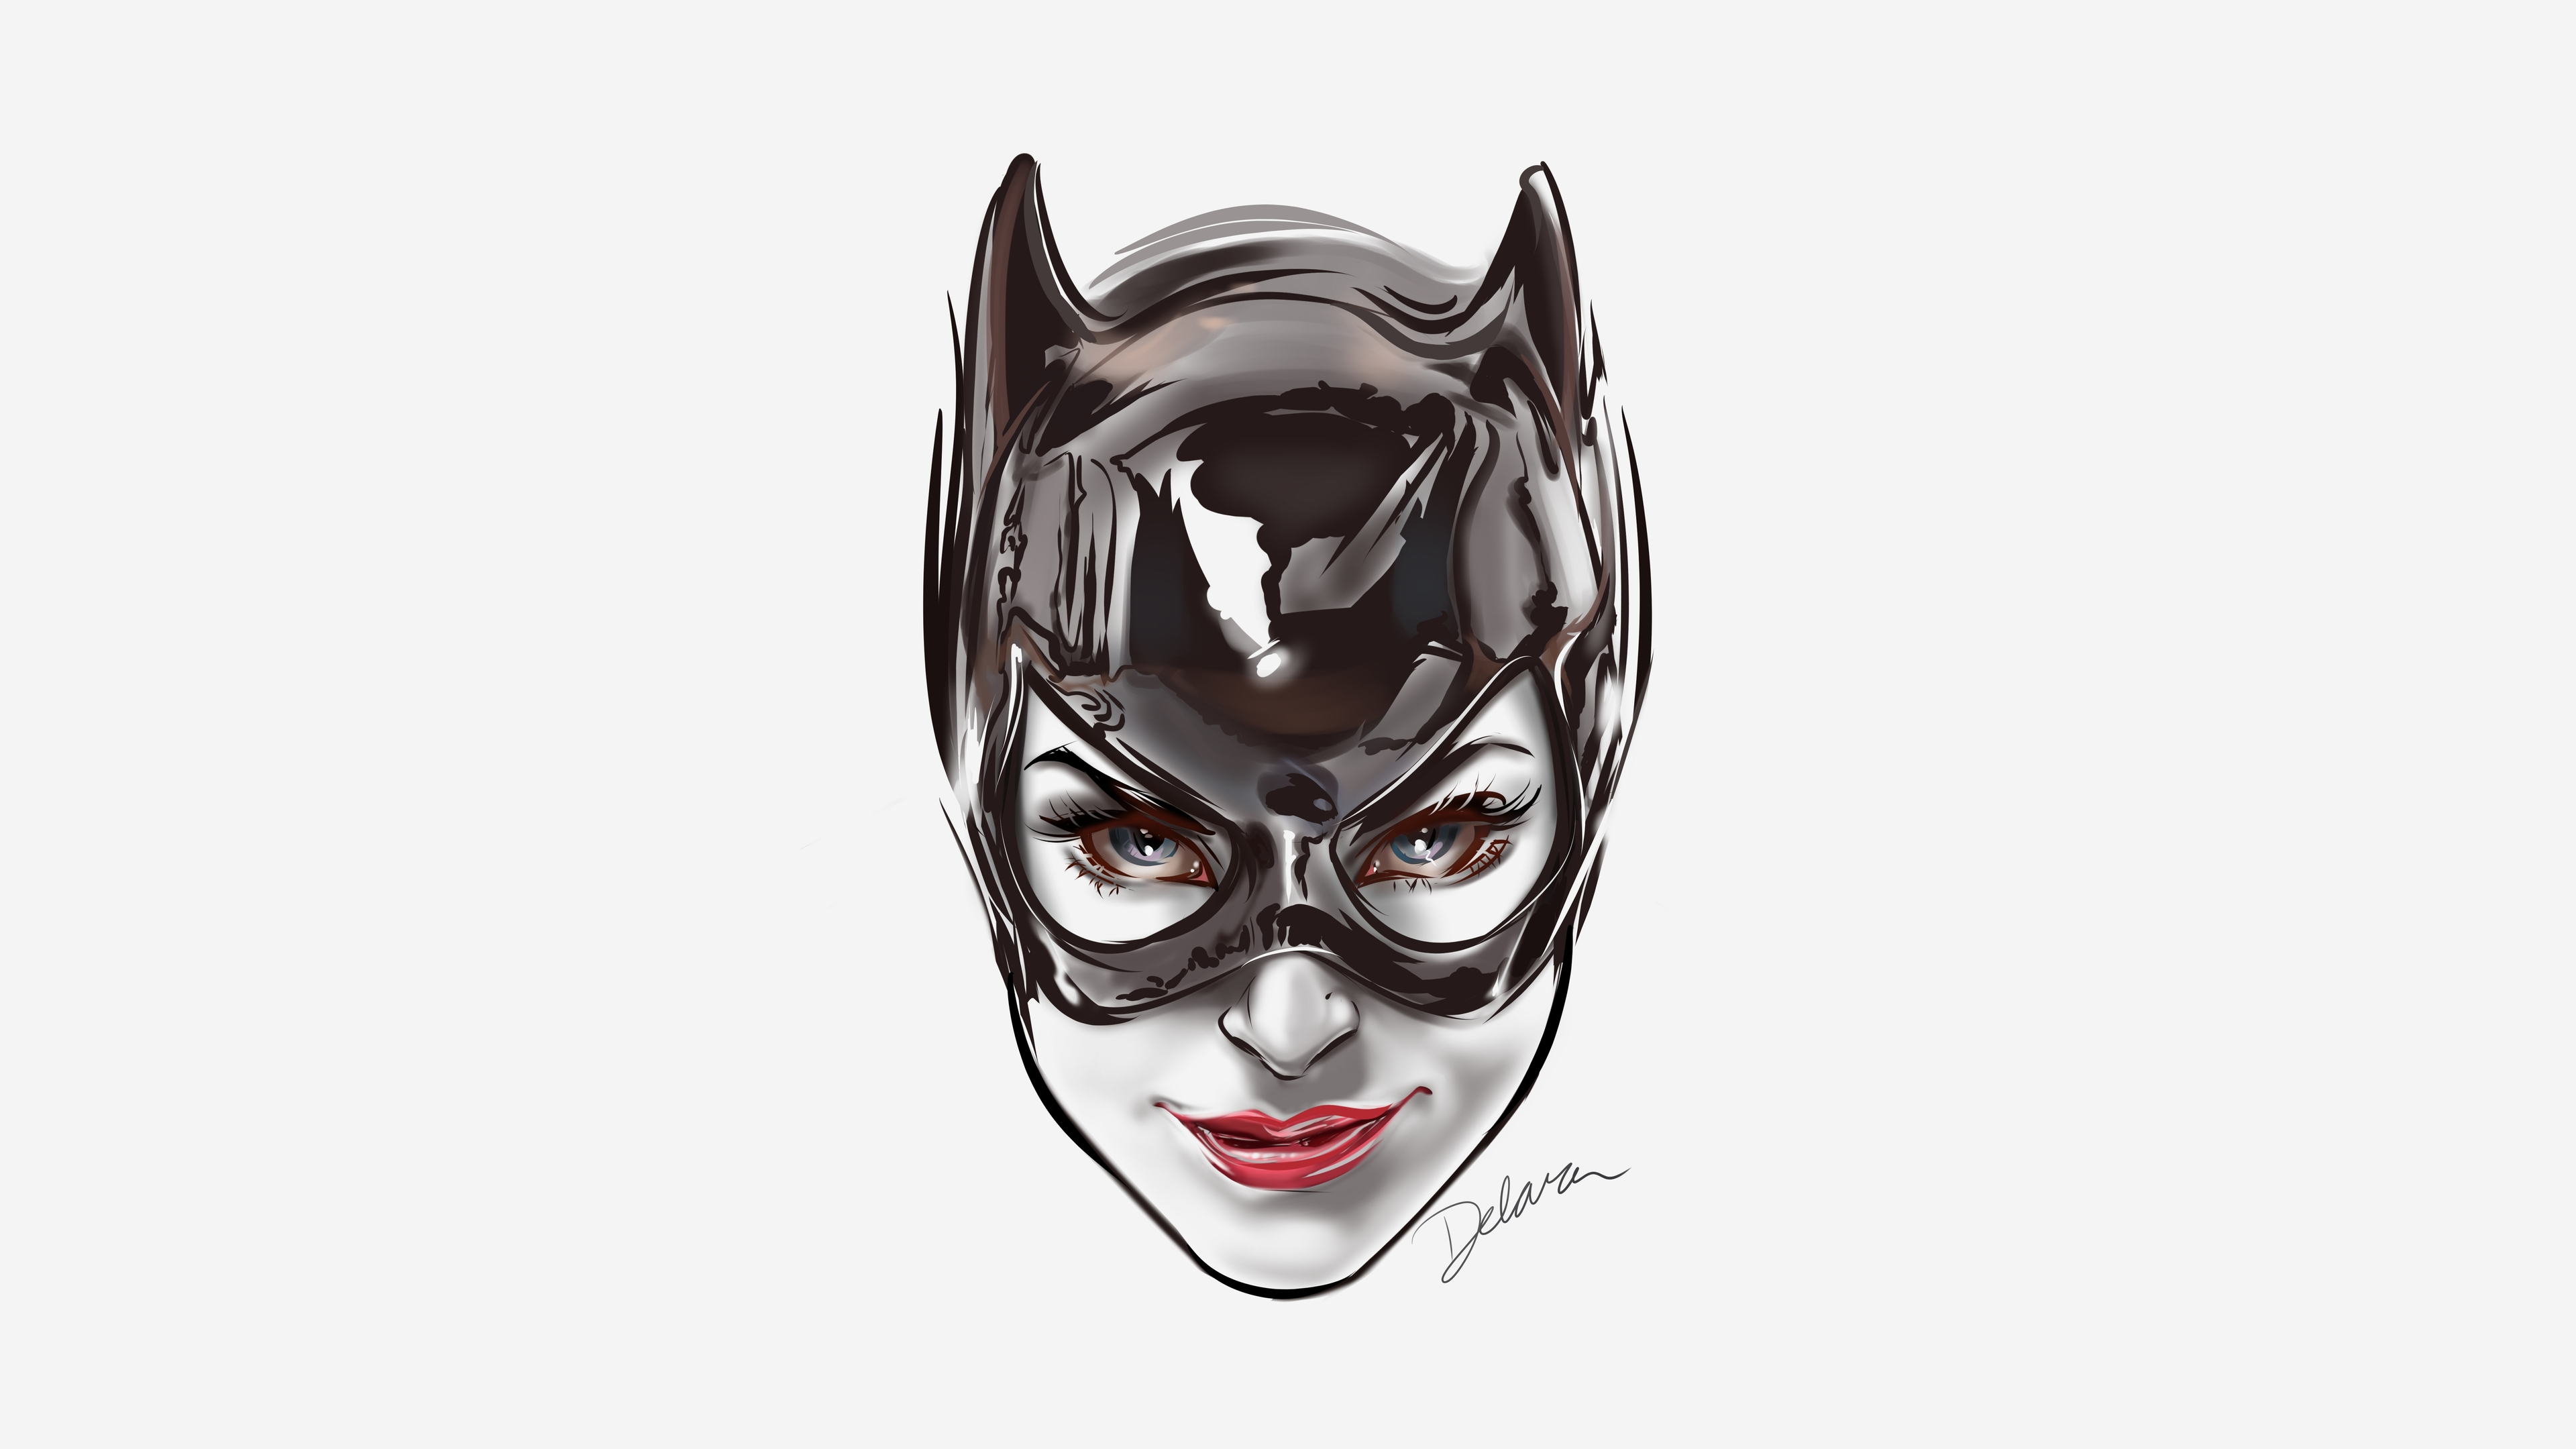 catwoman face artwork 8k 1536521799 - Catwoman Face Artwork 8k - superheroes wallpapers, hd-wallpapers, catwoman wallpapers, 8k wallpapers, 5k wallpapers, 4k-wallpapers